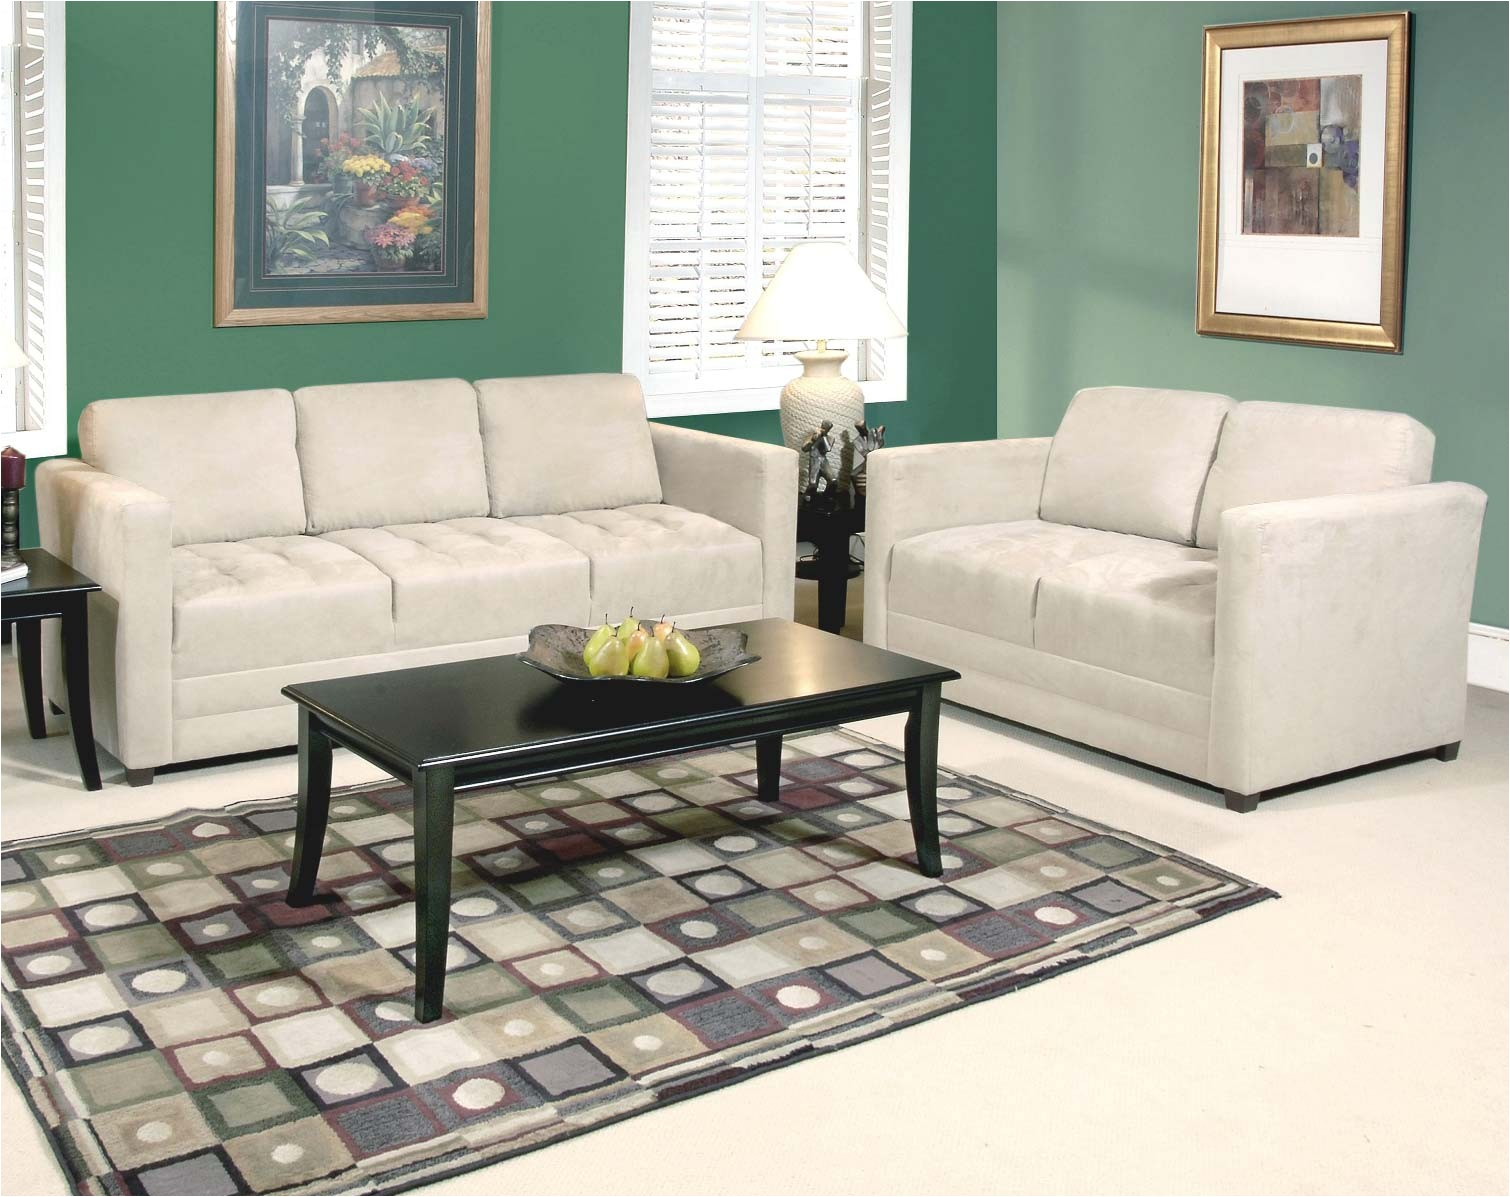 furniture add style and comfort with unclaimed freight reading pa orl baohns org